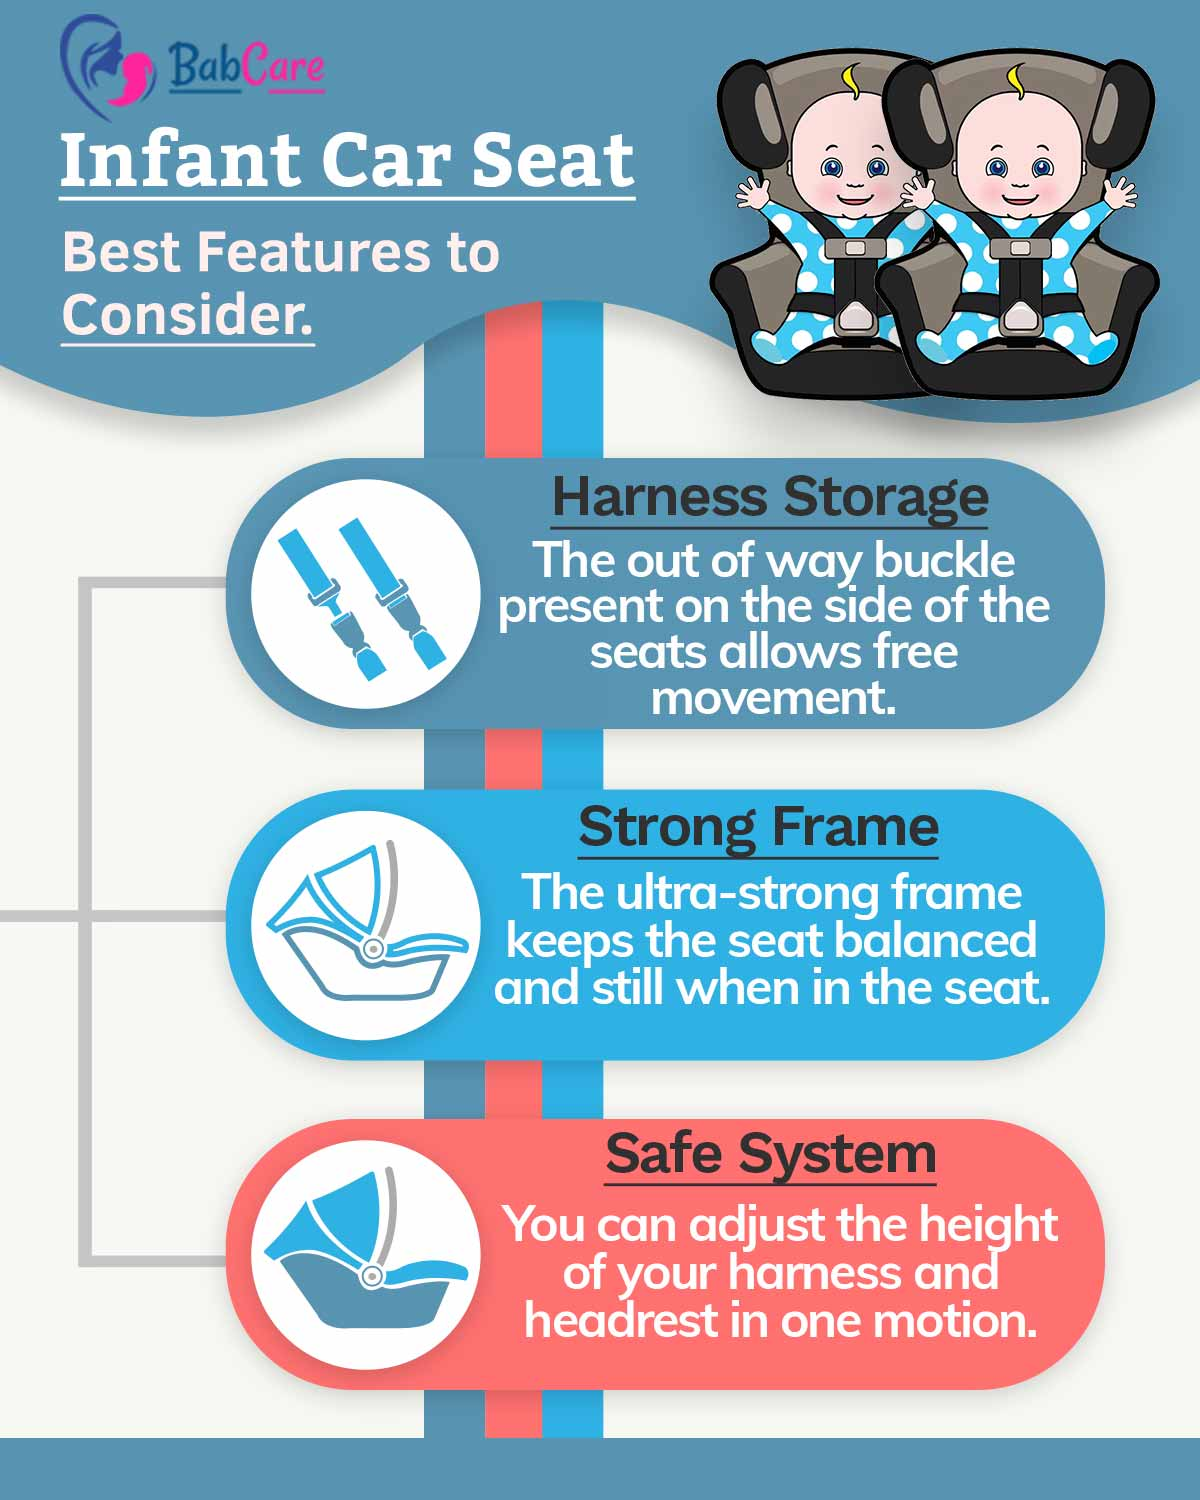 Infographic of extend2fit car seat provided harness storage, strong frame and safe adjust system